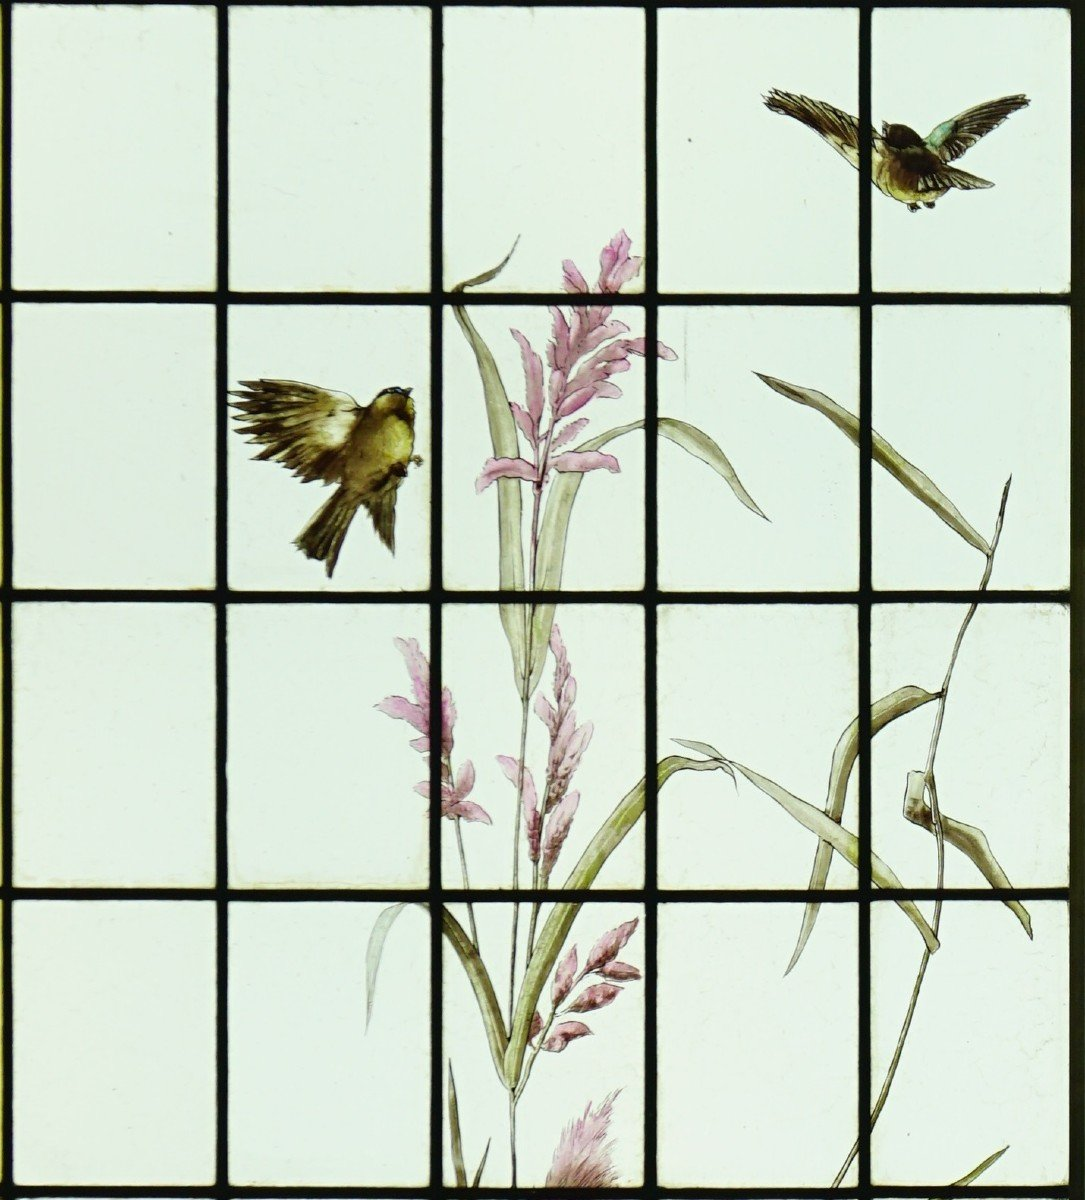 Stained Glass - Stained Glass - Sunflowers, Dahlias And Birds-photo-3